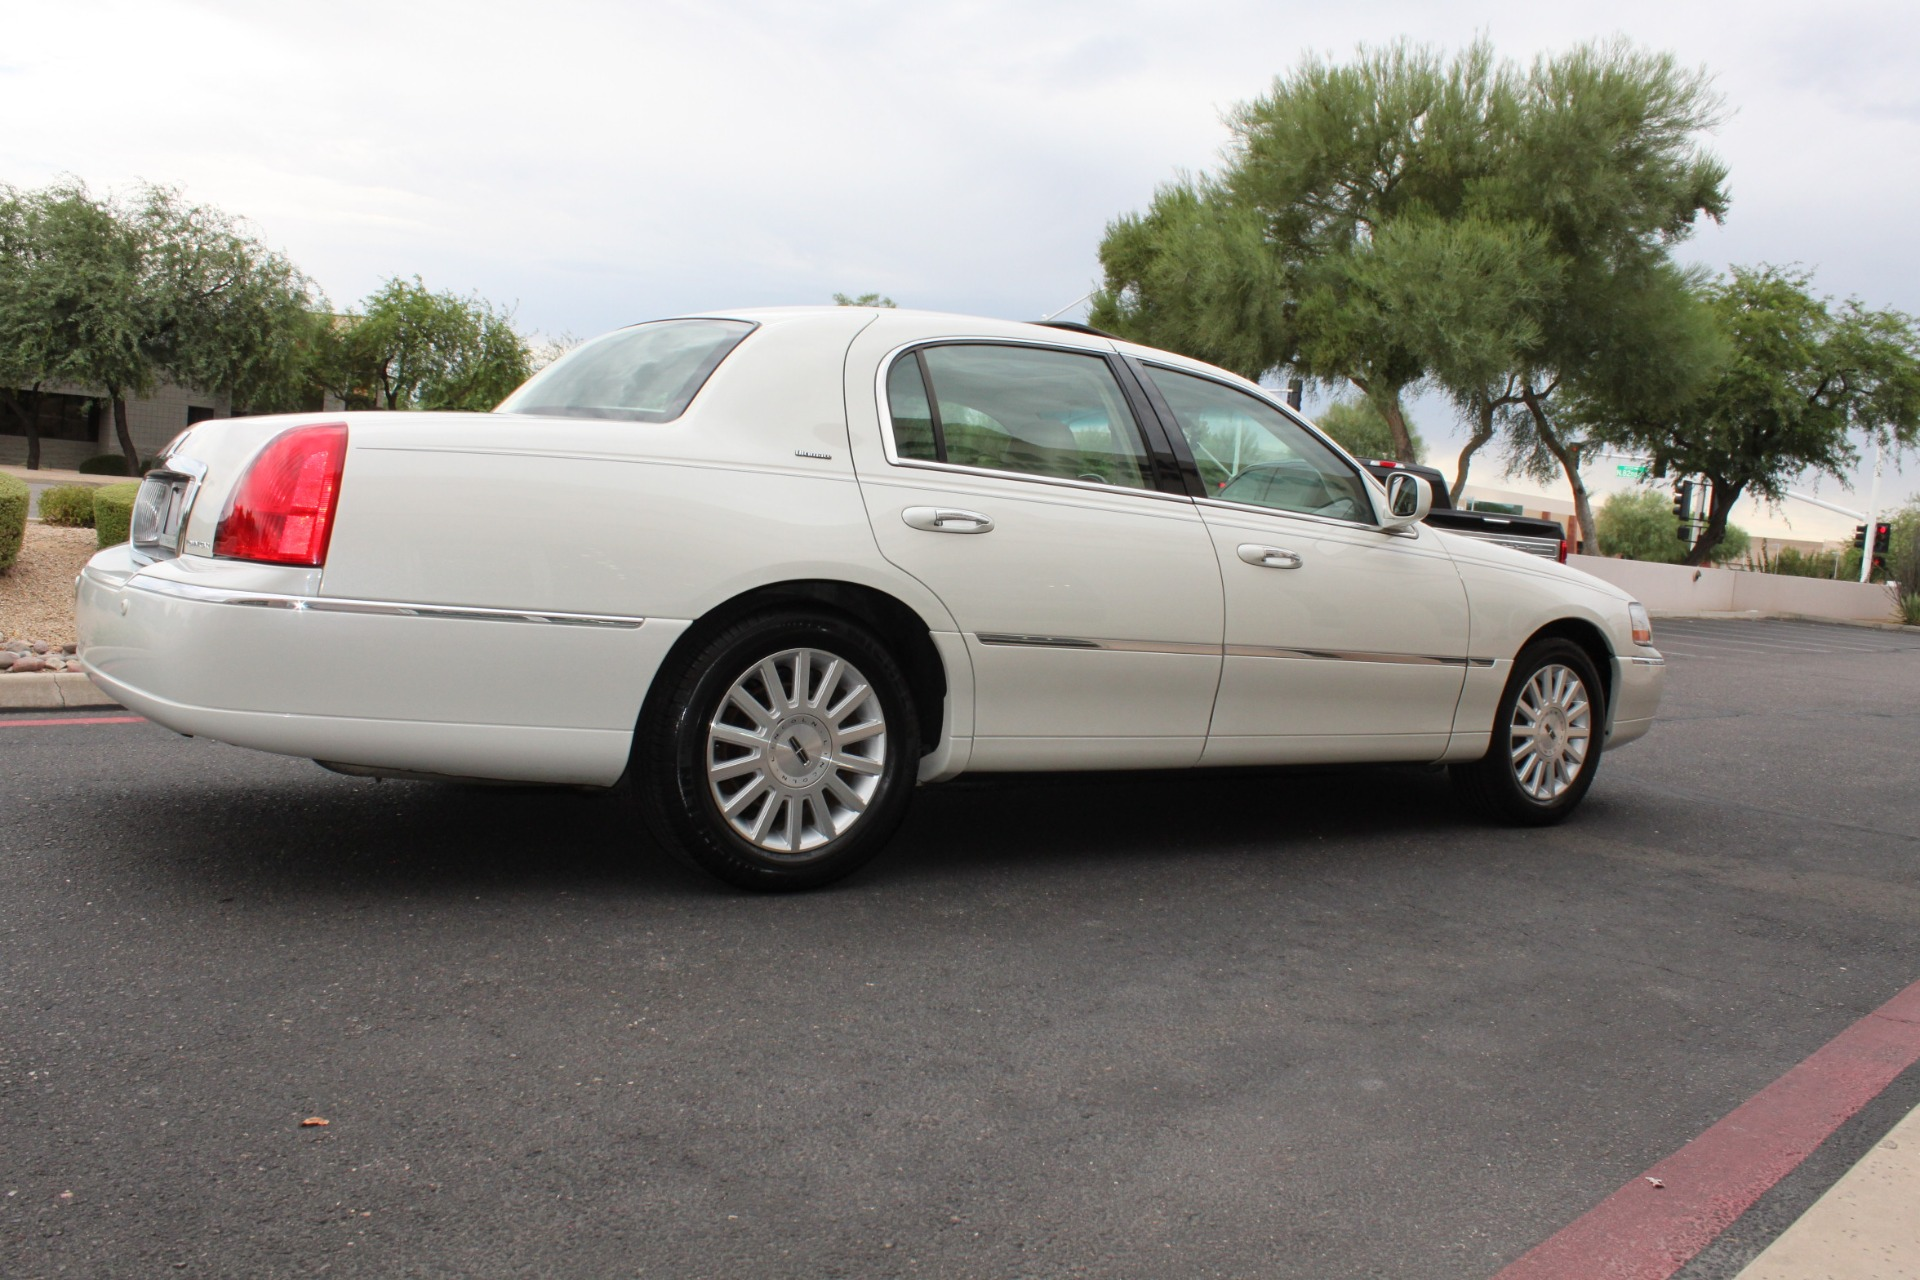 Used-2004-Lincoln-Town-Car-Ultimate-Land-Cruiser